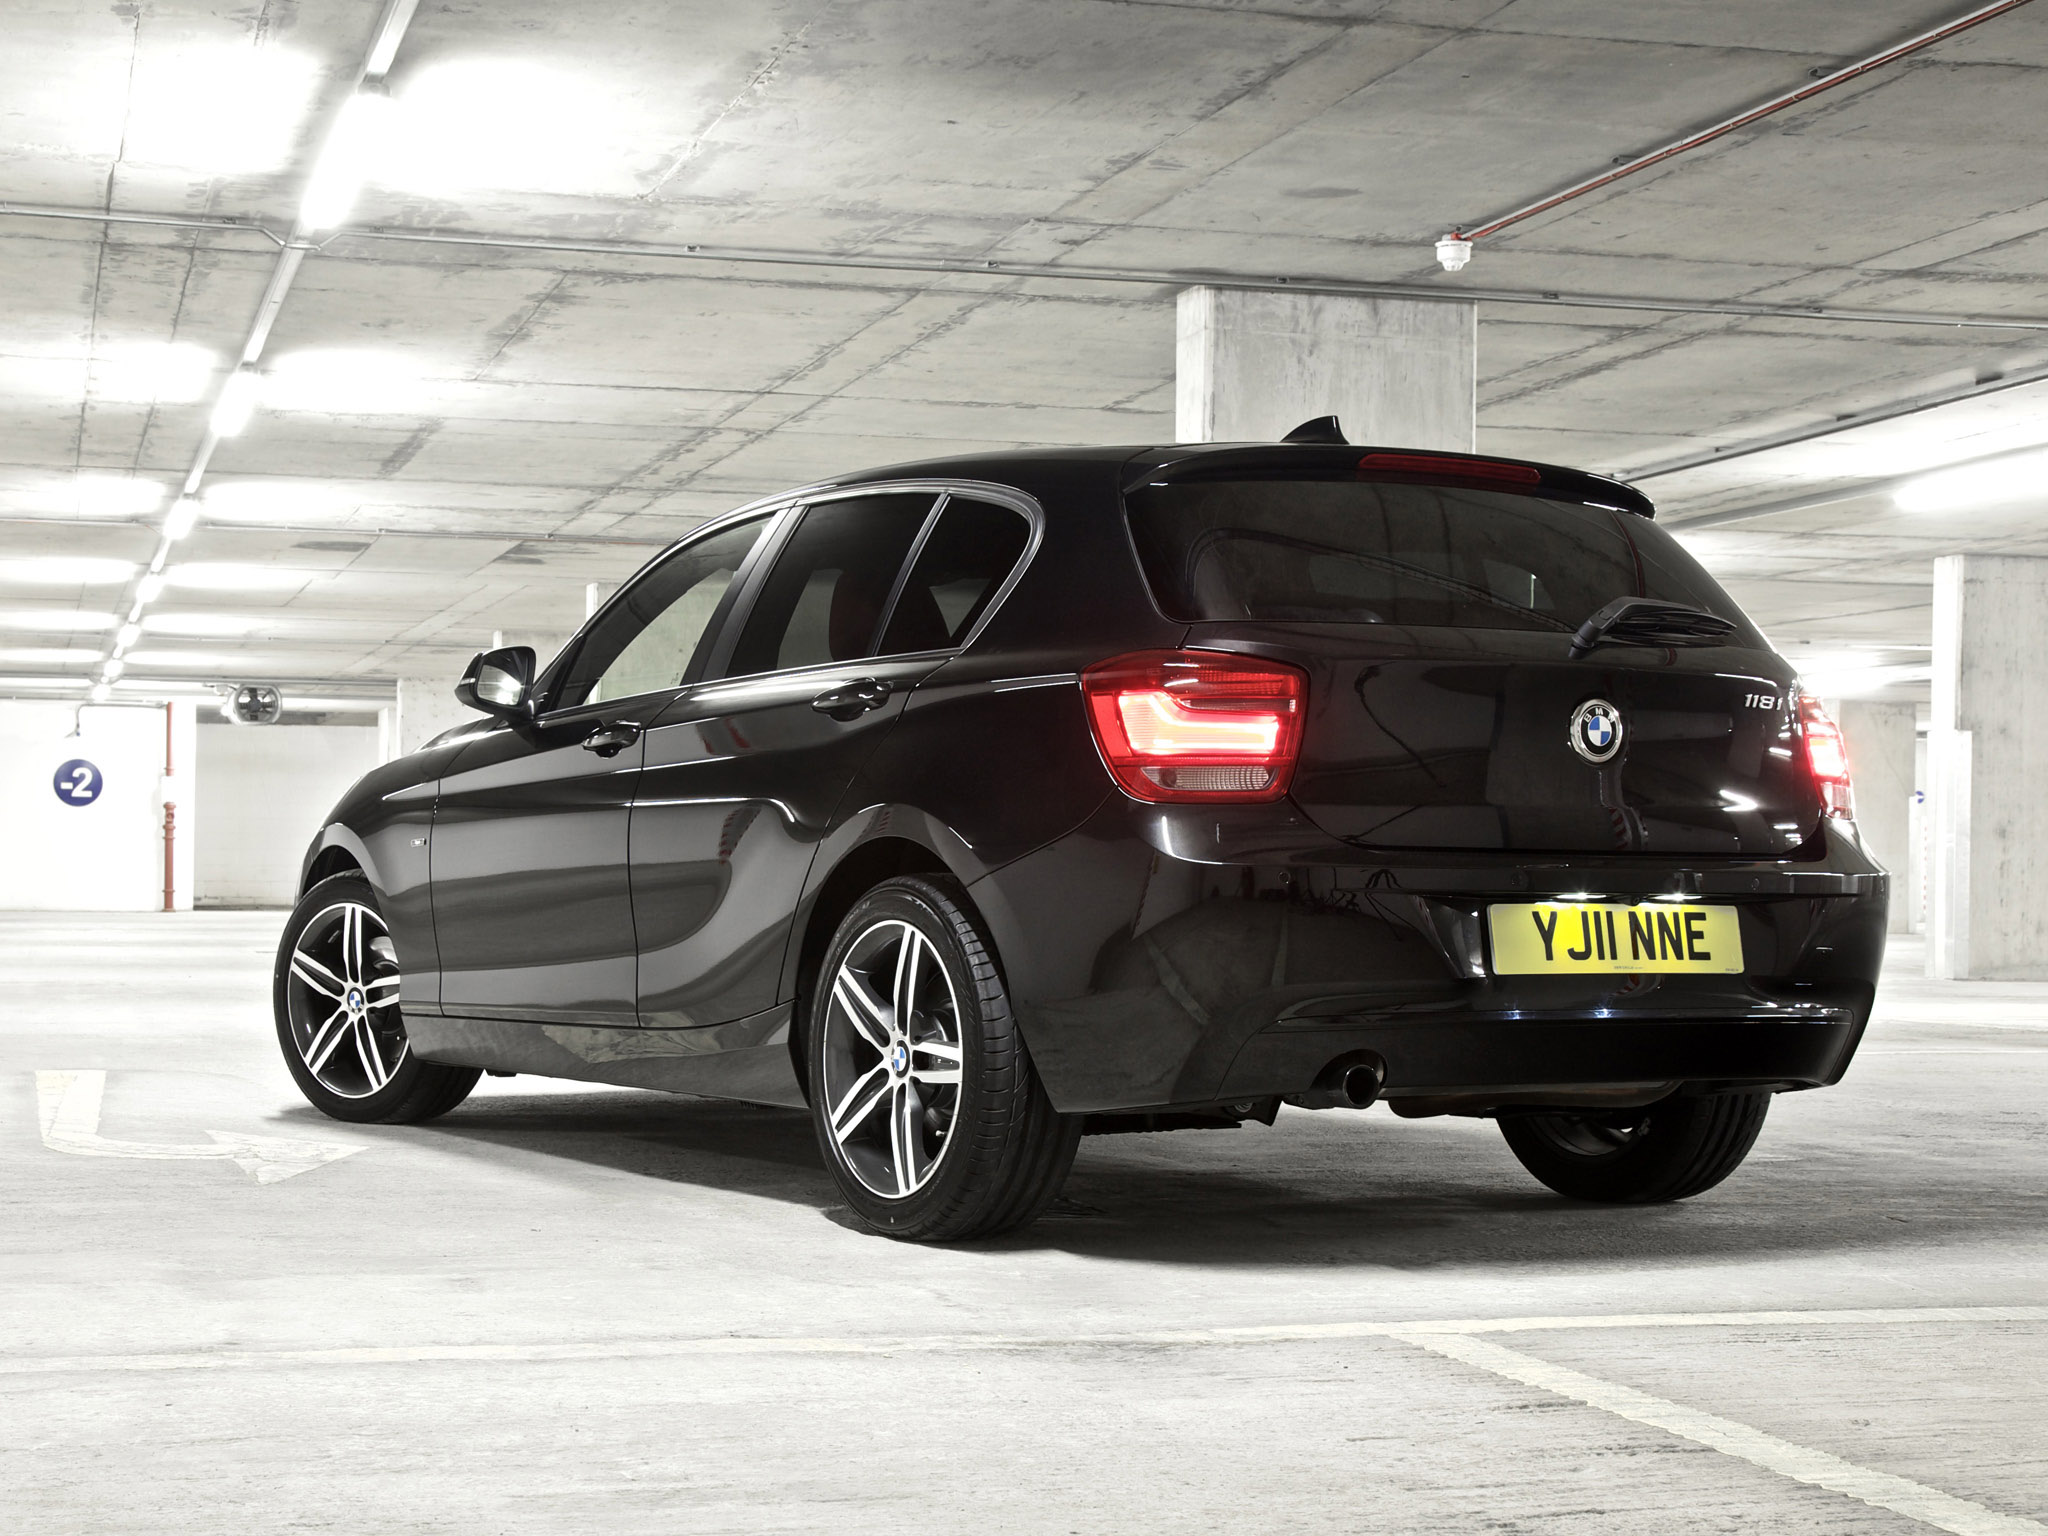 bmw 1 series 118i 5 door sport line f20 uk 2011 bmw 1 series 118i 5 door sport line f20 uk 2011. Black Bedroom Furniture Sets. Home Design Ideas